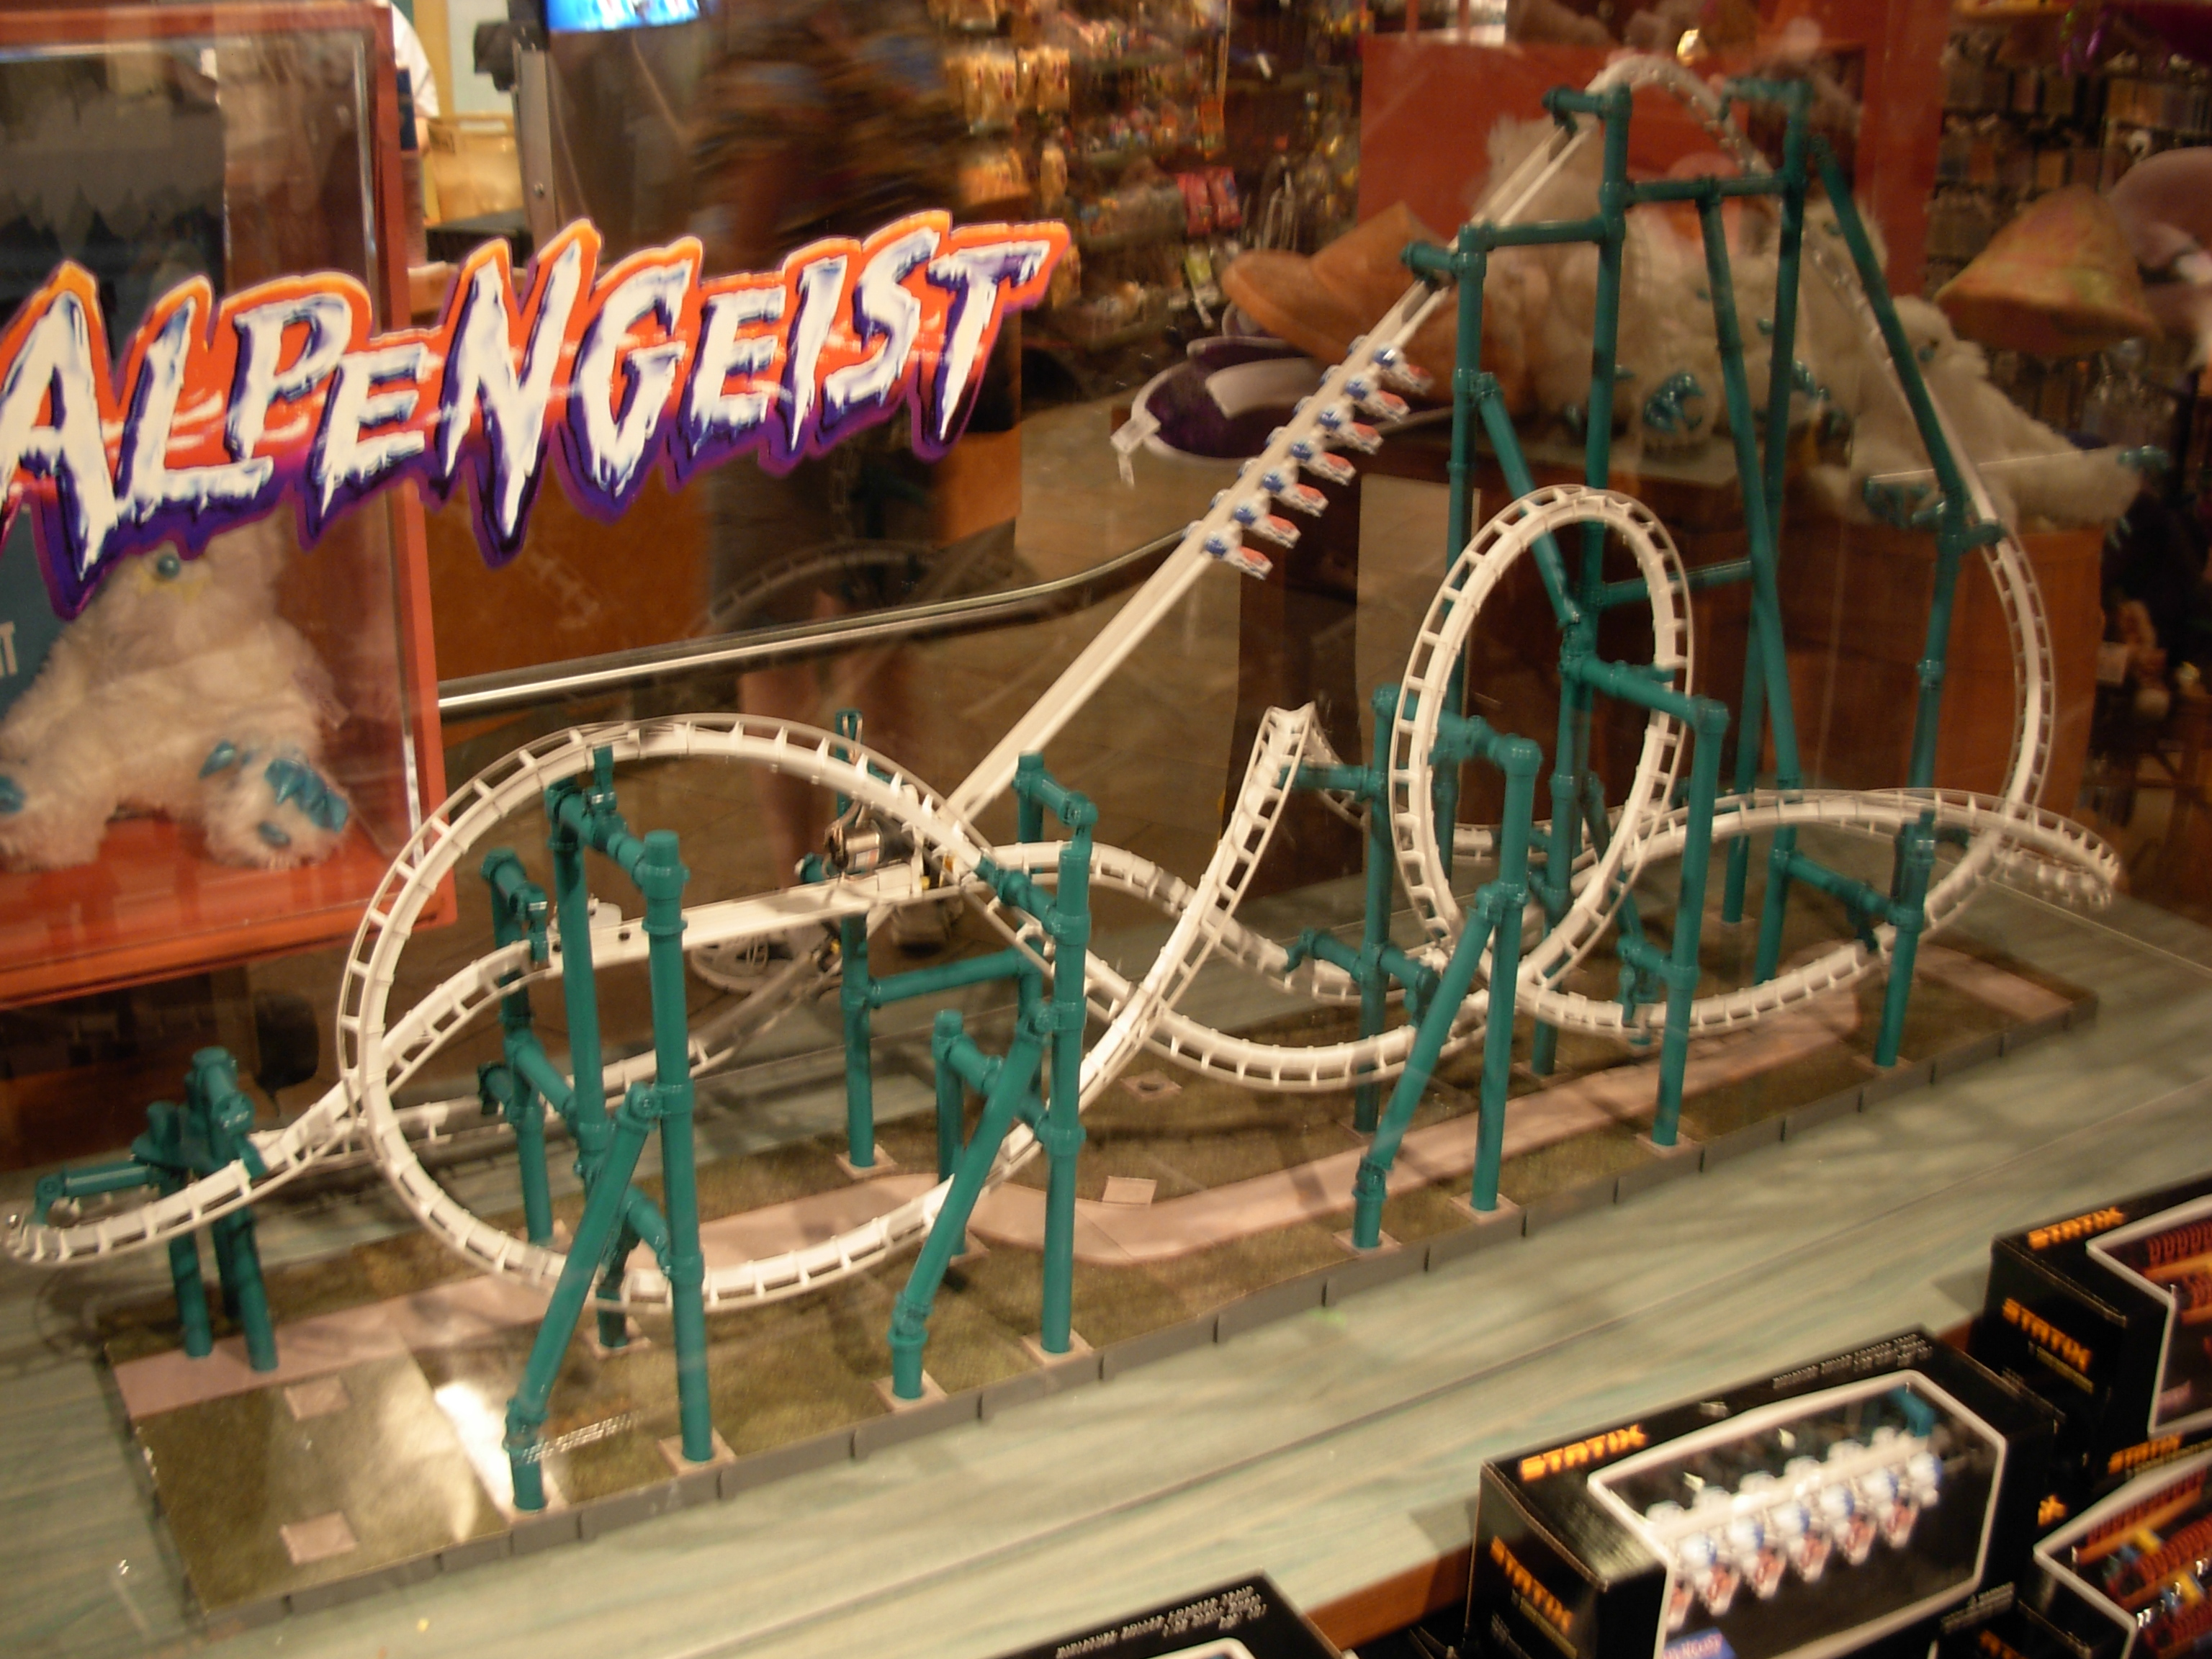 File:Alpengeist model (Busch Gardens Williamsburg).jpg - Wikimedia ...